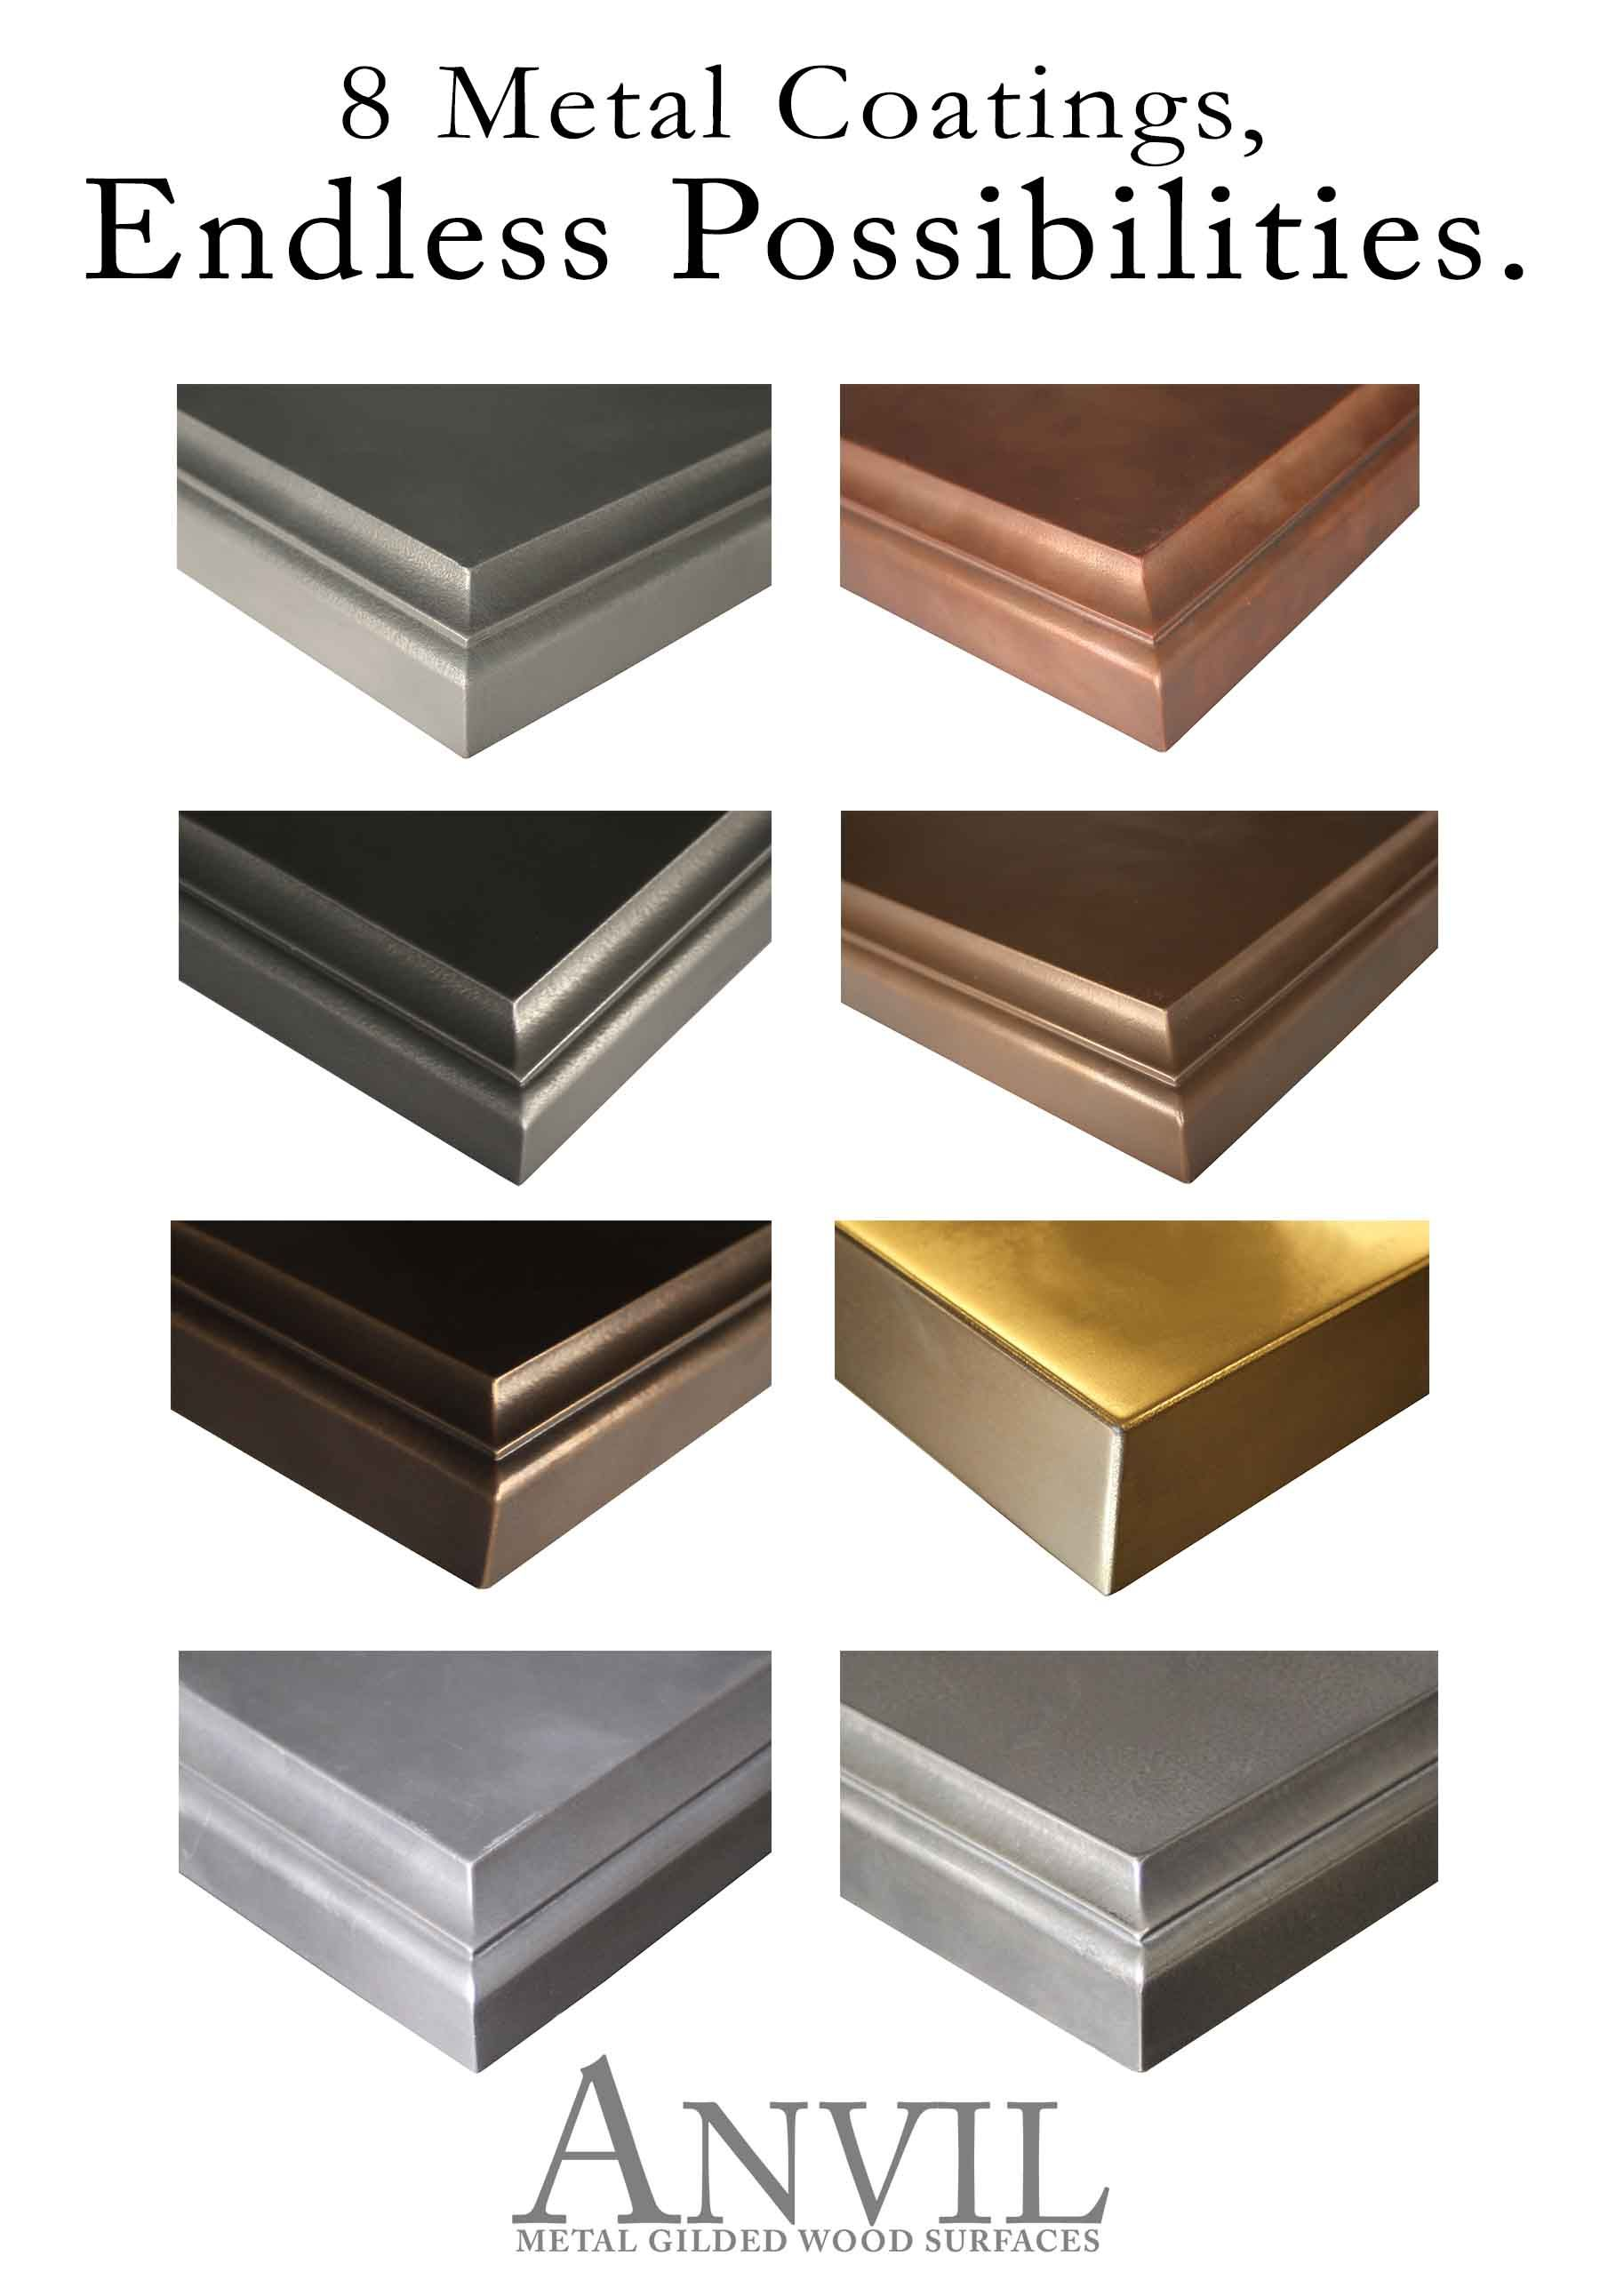 Anvil™ Metal Countertops are available in 8 metal coatings ...